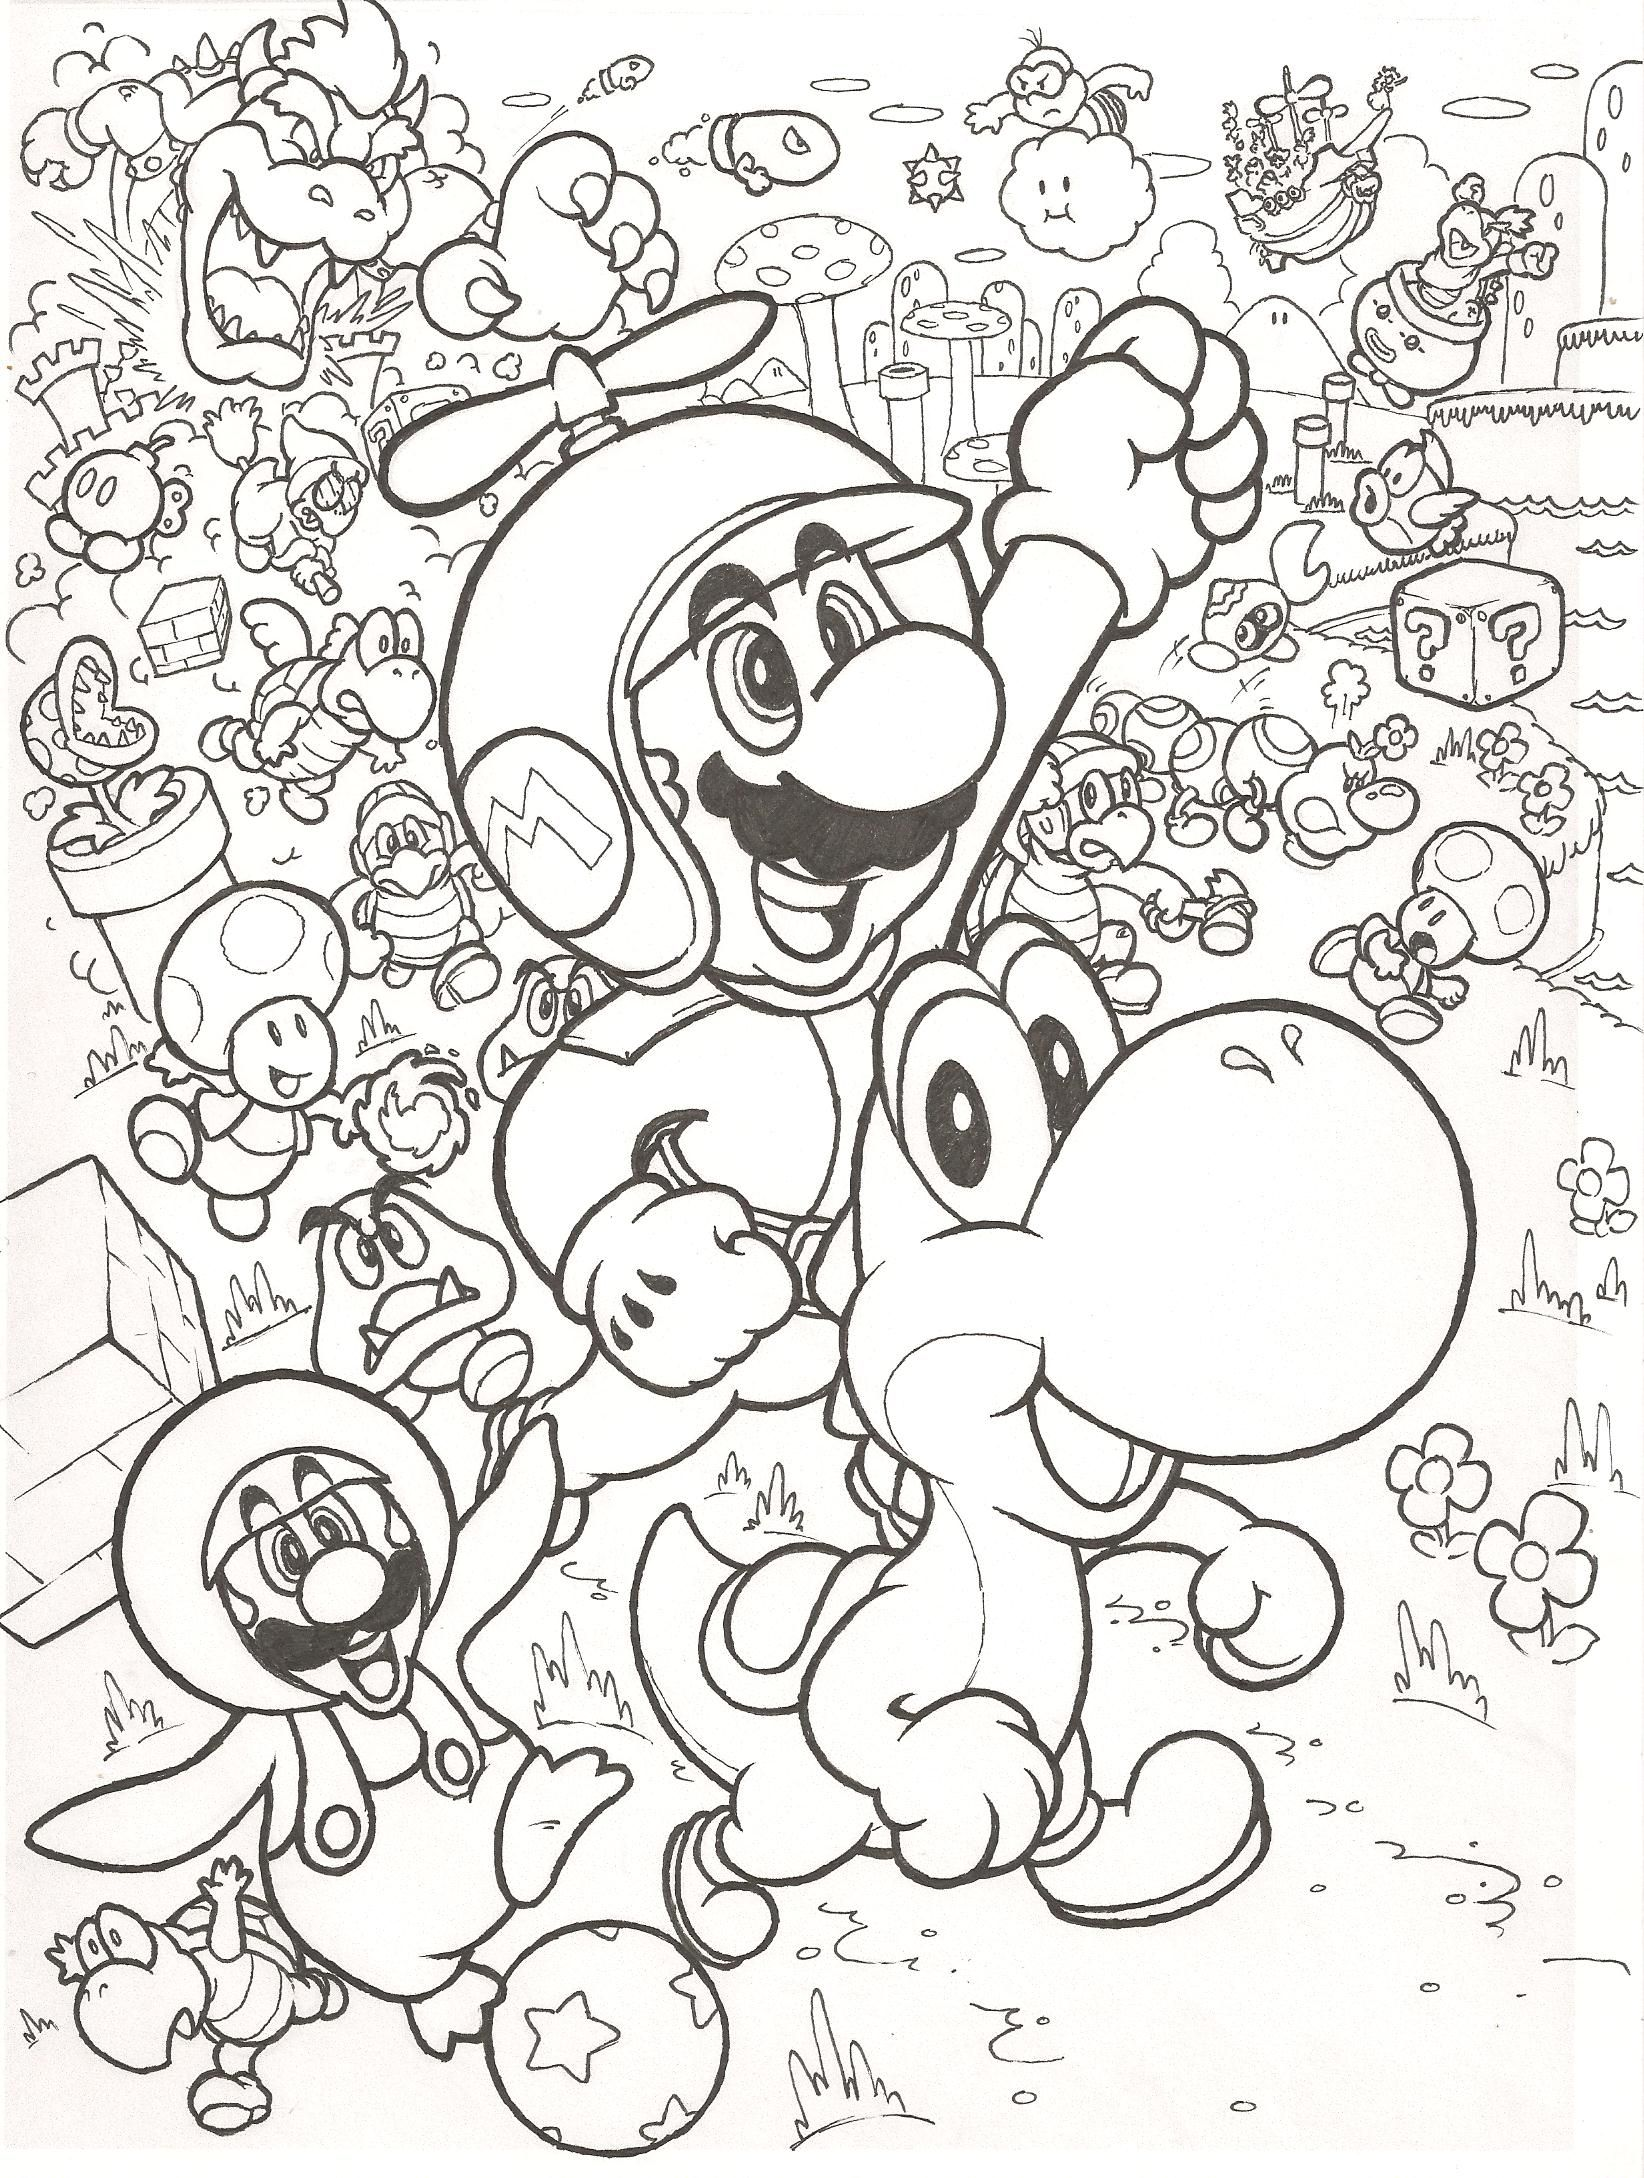 super mario bros coloring pages Free